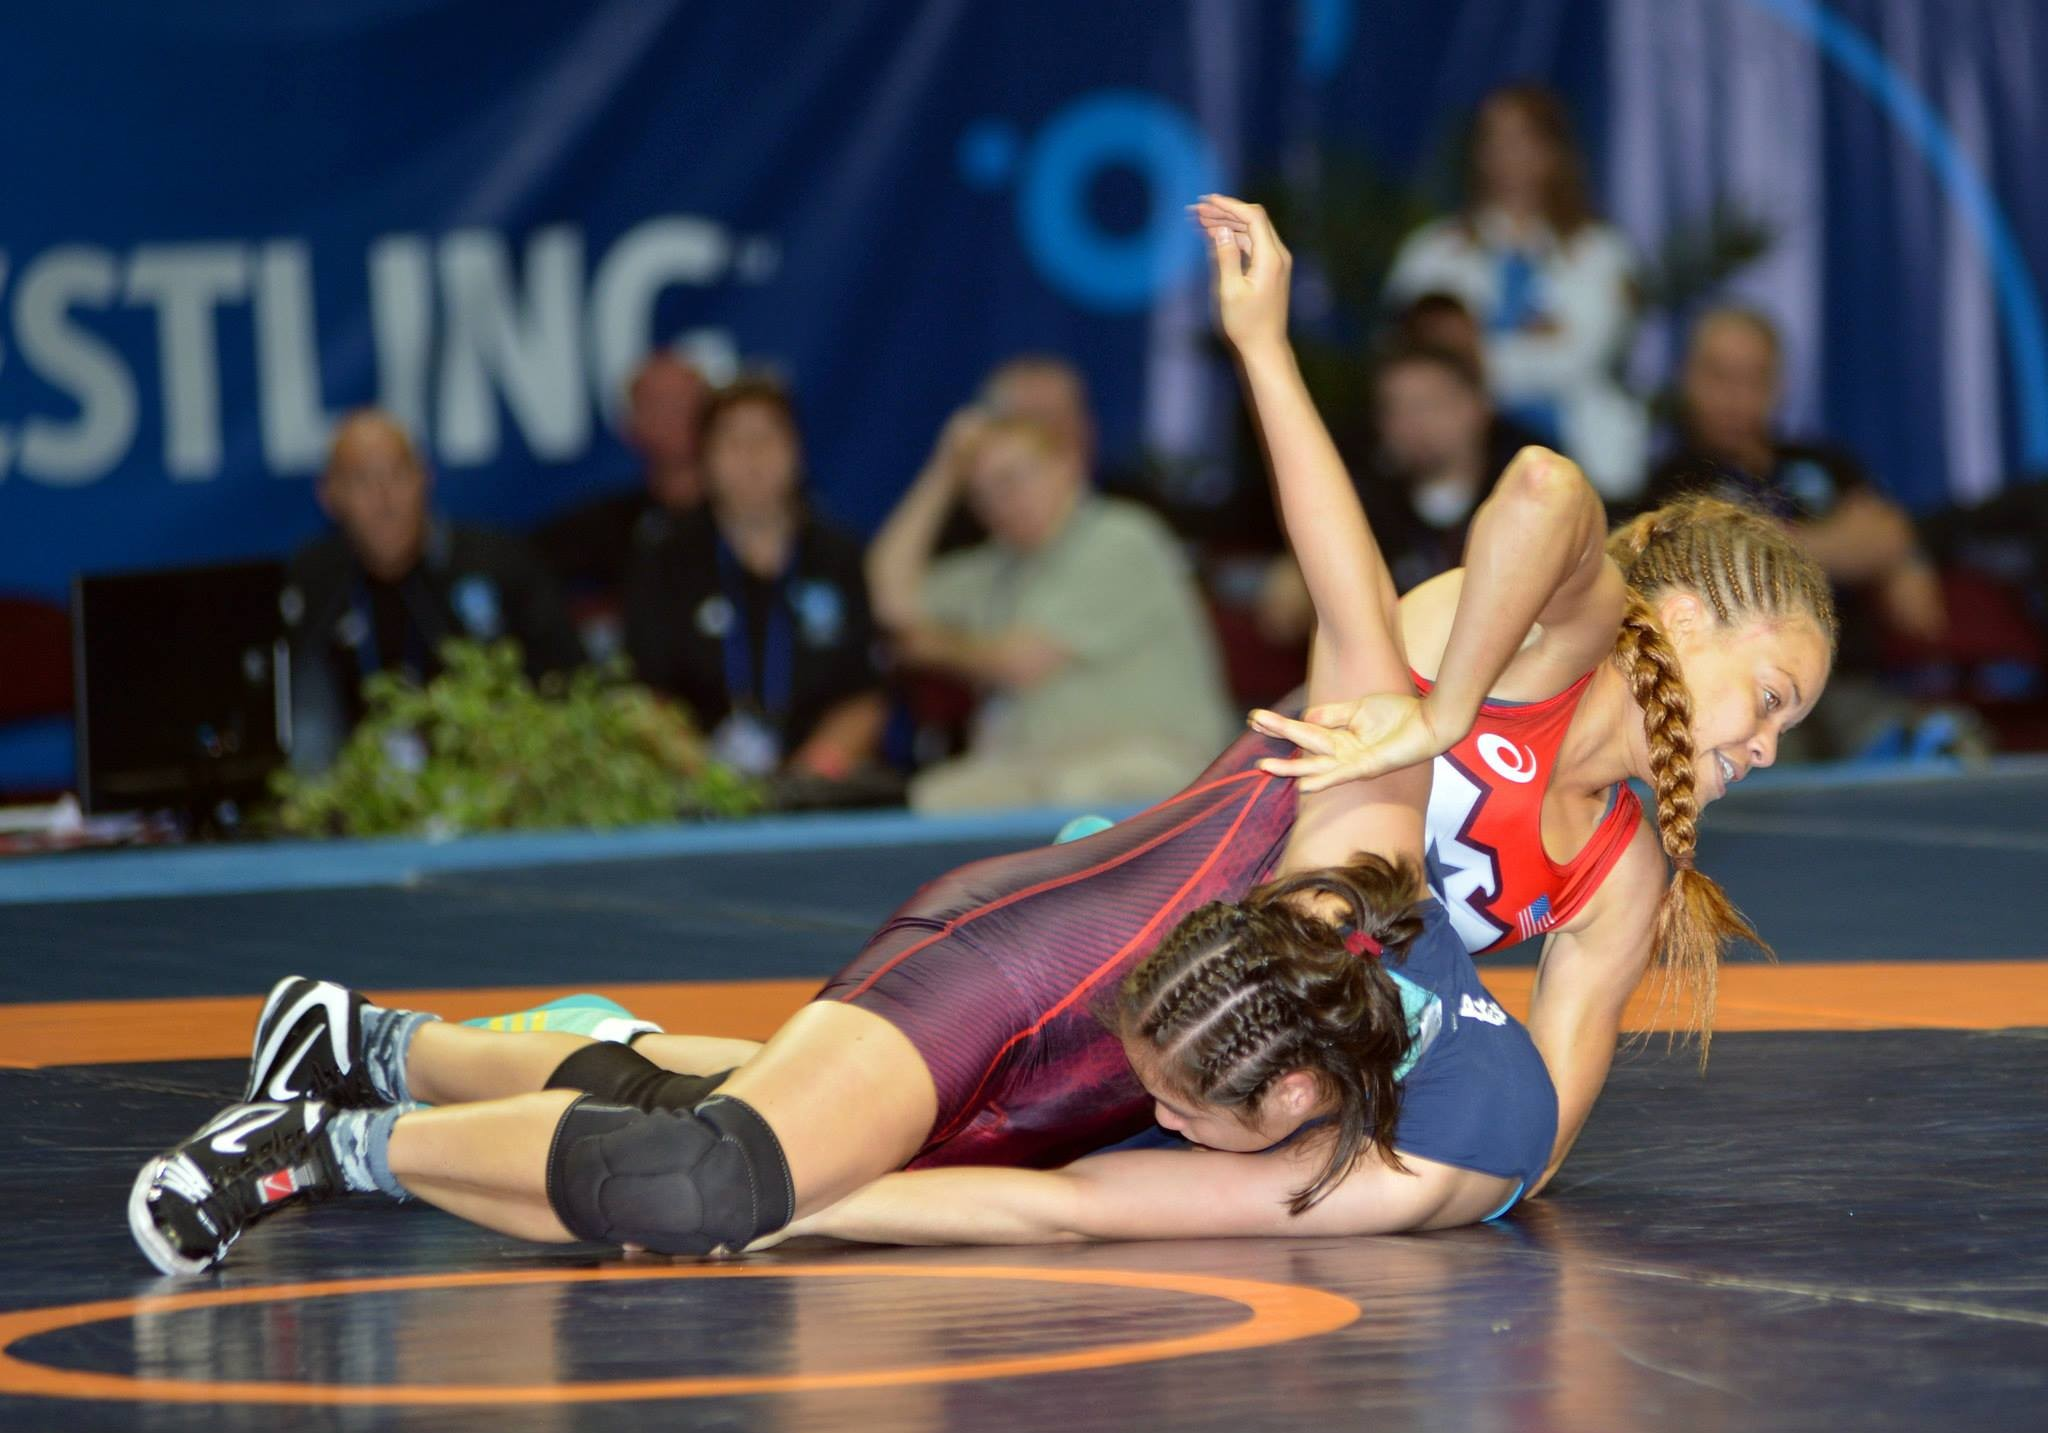 WCAP wrestler captures bronze at worlds | Article | The United ...